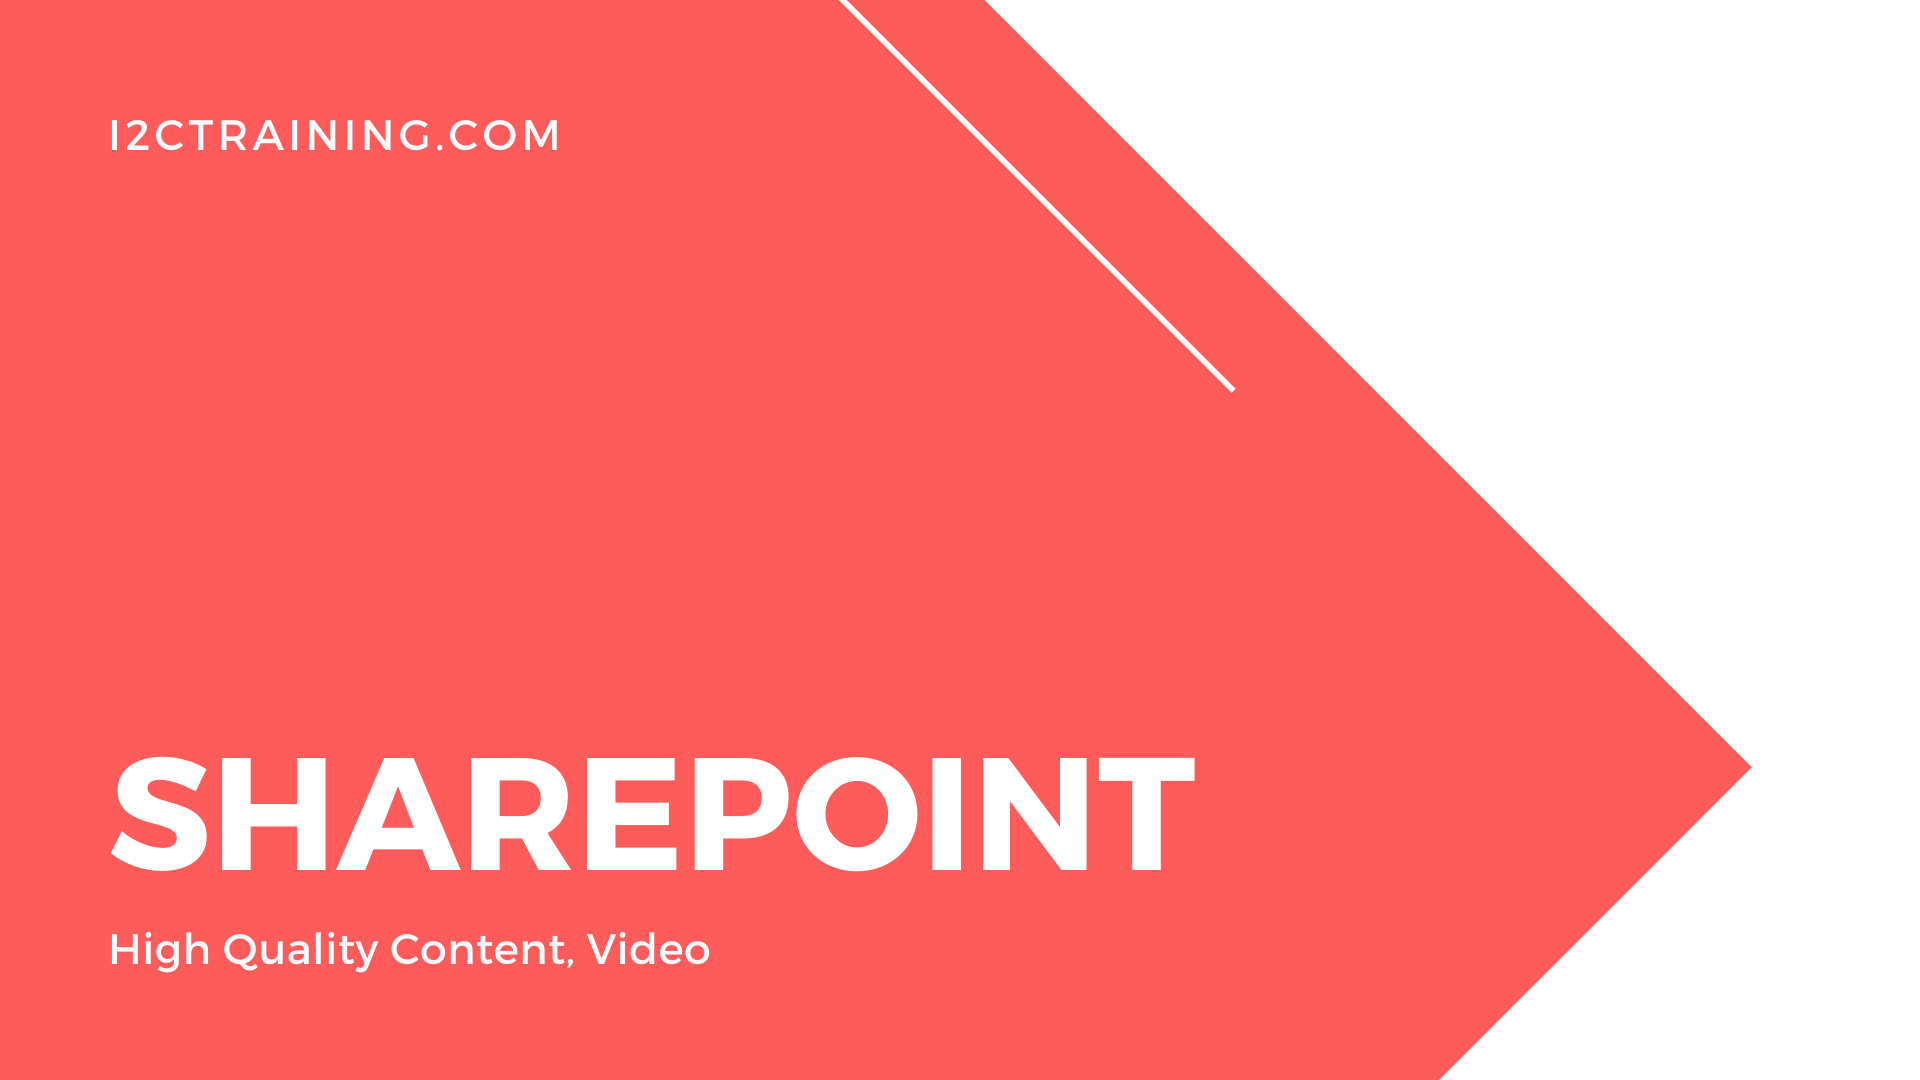 sharepoint online-course-I2ctraining